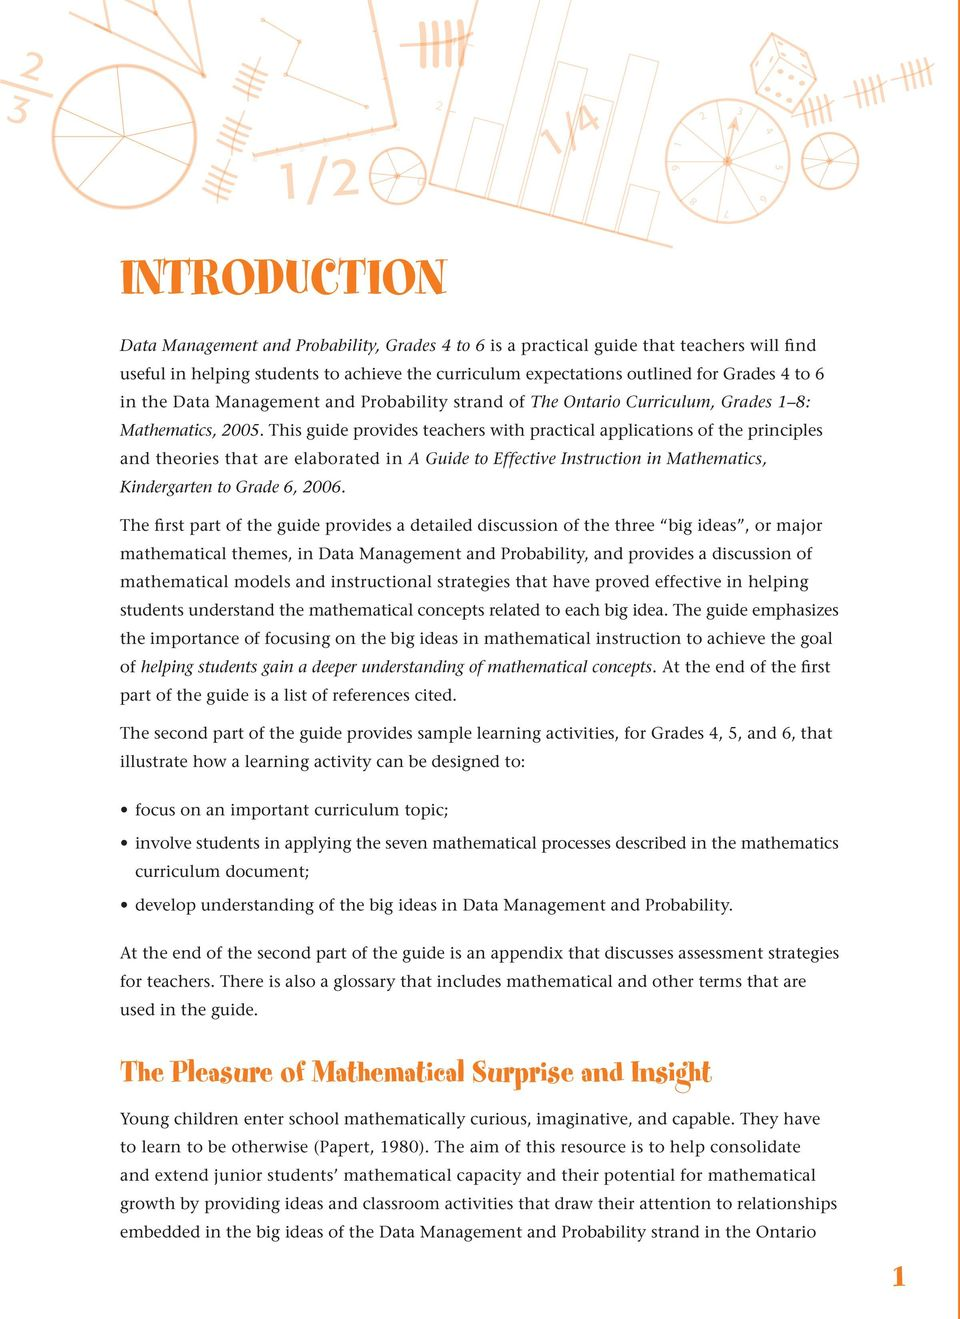 This guide provides teachers with practical applications of the principles and theories that are elaborated in A Guide to Effective Instruction in Mathematics, Kindergarten to Grade 6, 2006.